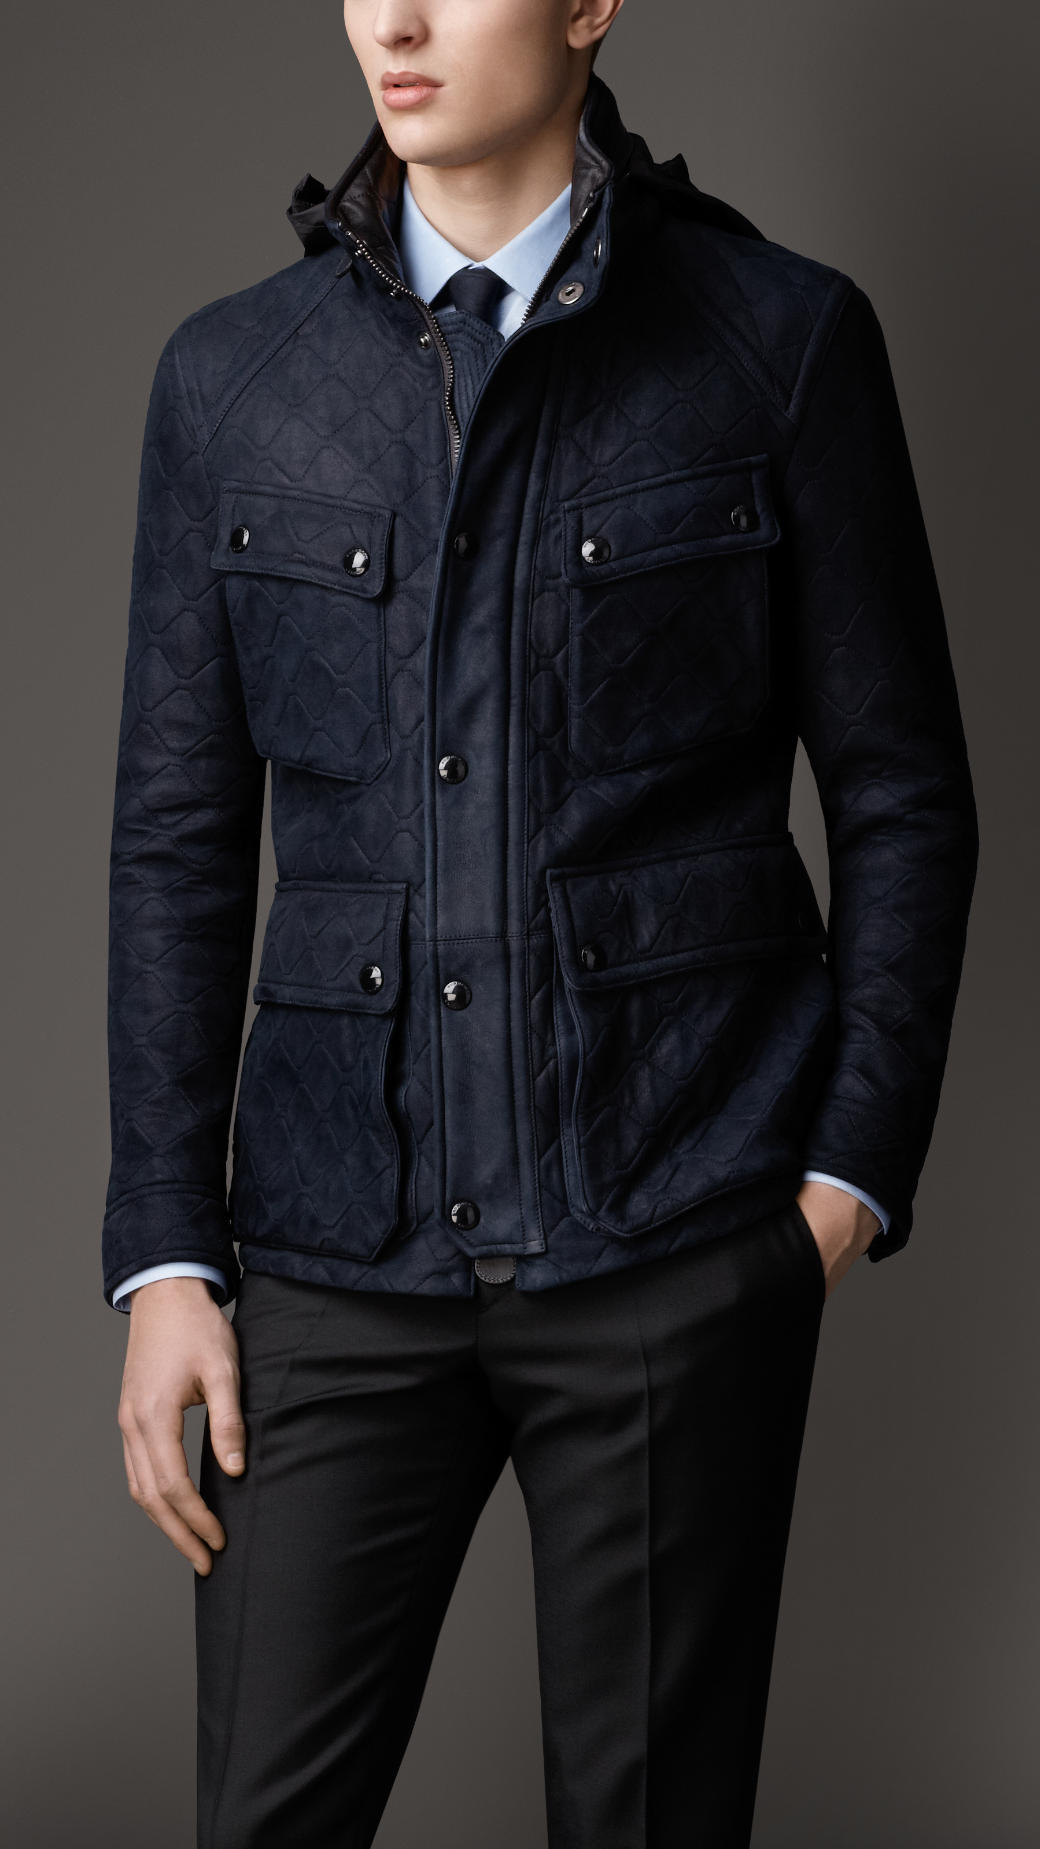 Spyder Jacket Mens